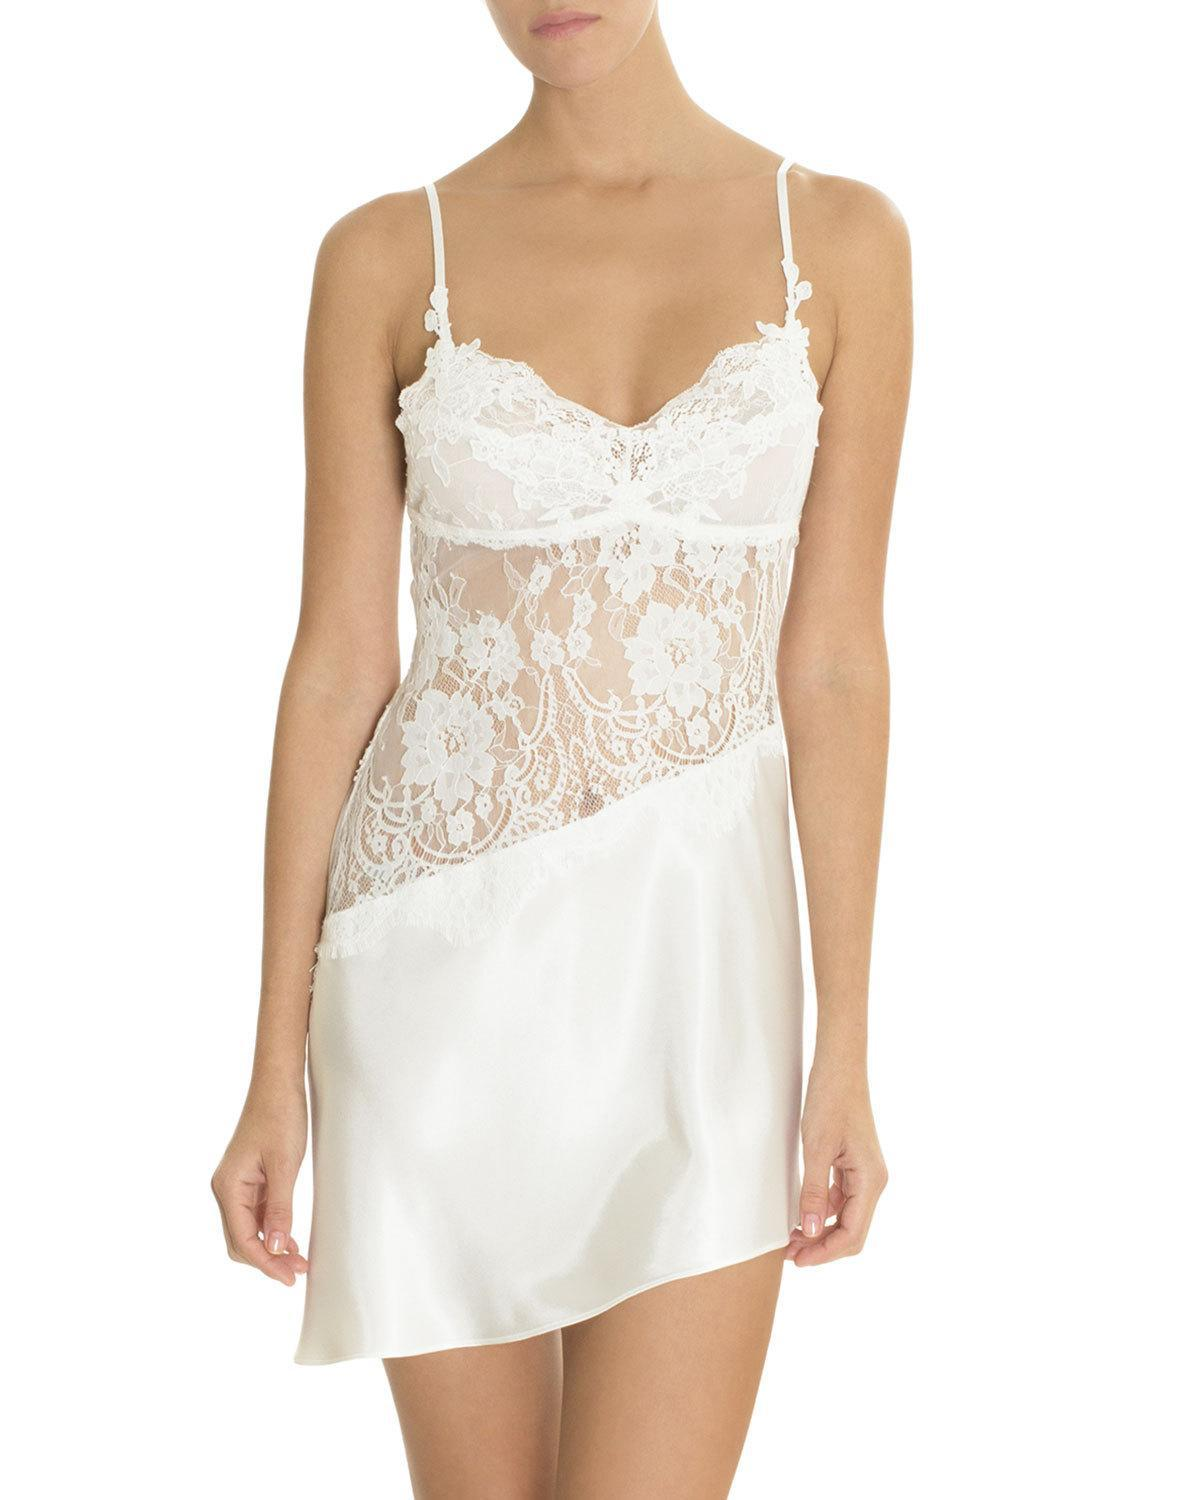 Lyst - Jonquil Carina Lace-inset Satin Chemise in White 3561f51ad